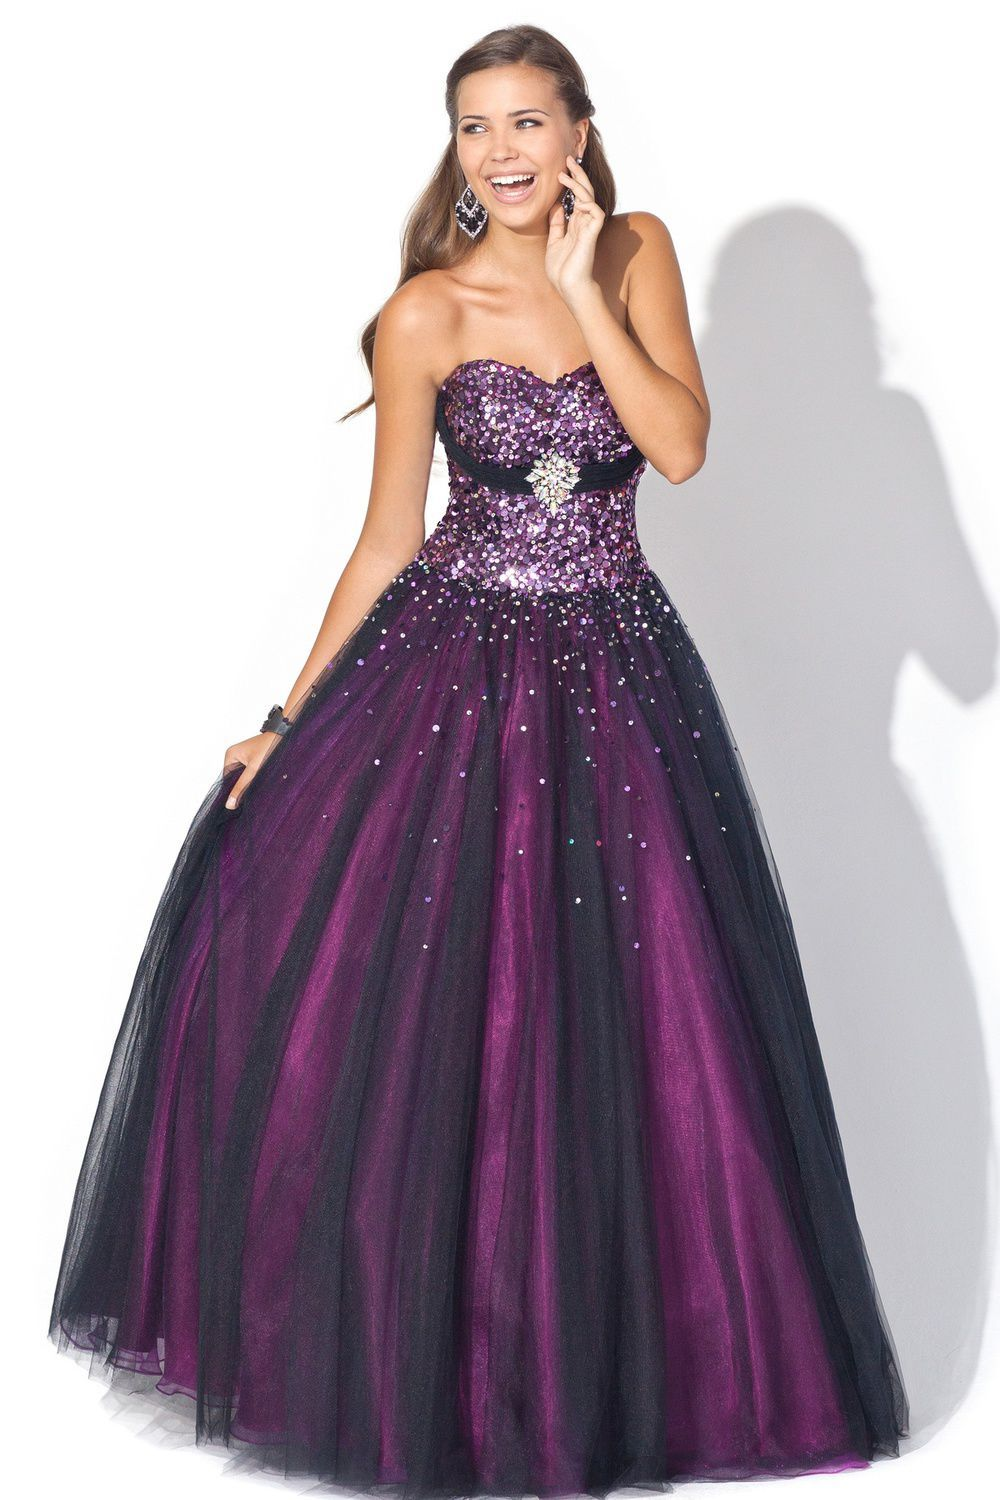 Most elegant evening apparil in the world Purple And Black Prom